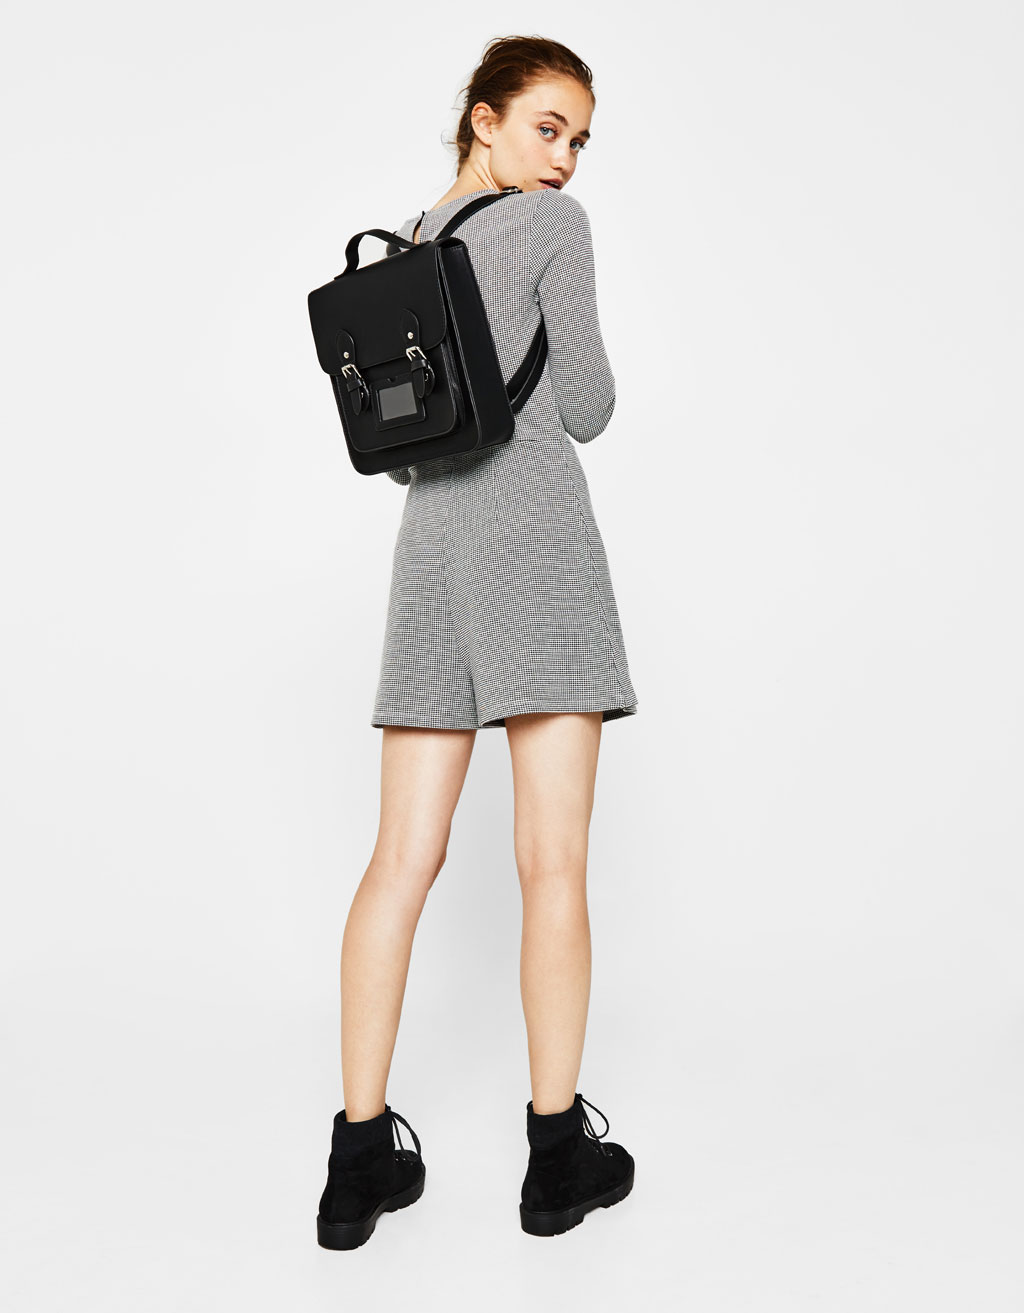 Square college backpack